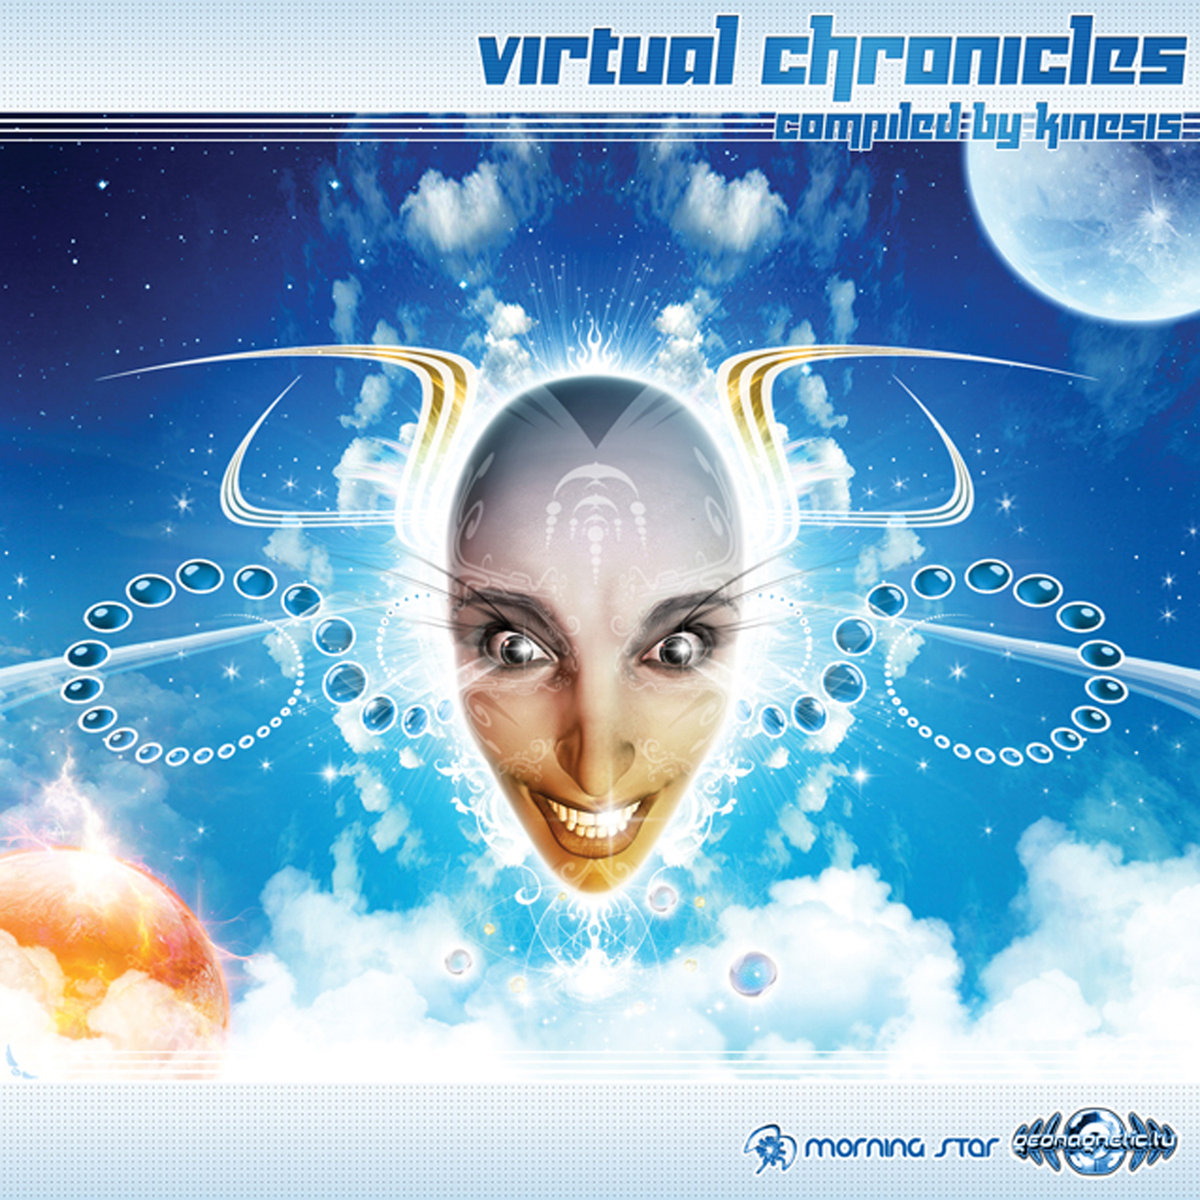 Northern Lights - Relax @ 'Various Artists - Virtual Chronicles (Compiled by Kinesis)' album (electronic, goa)